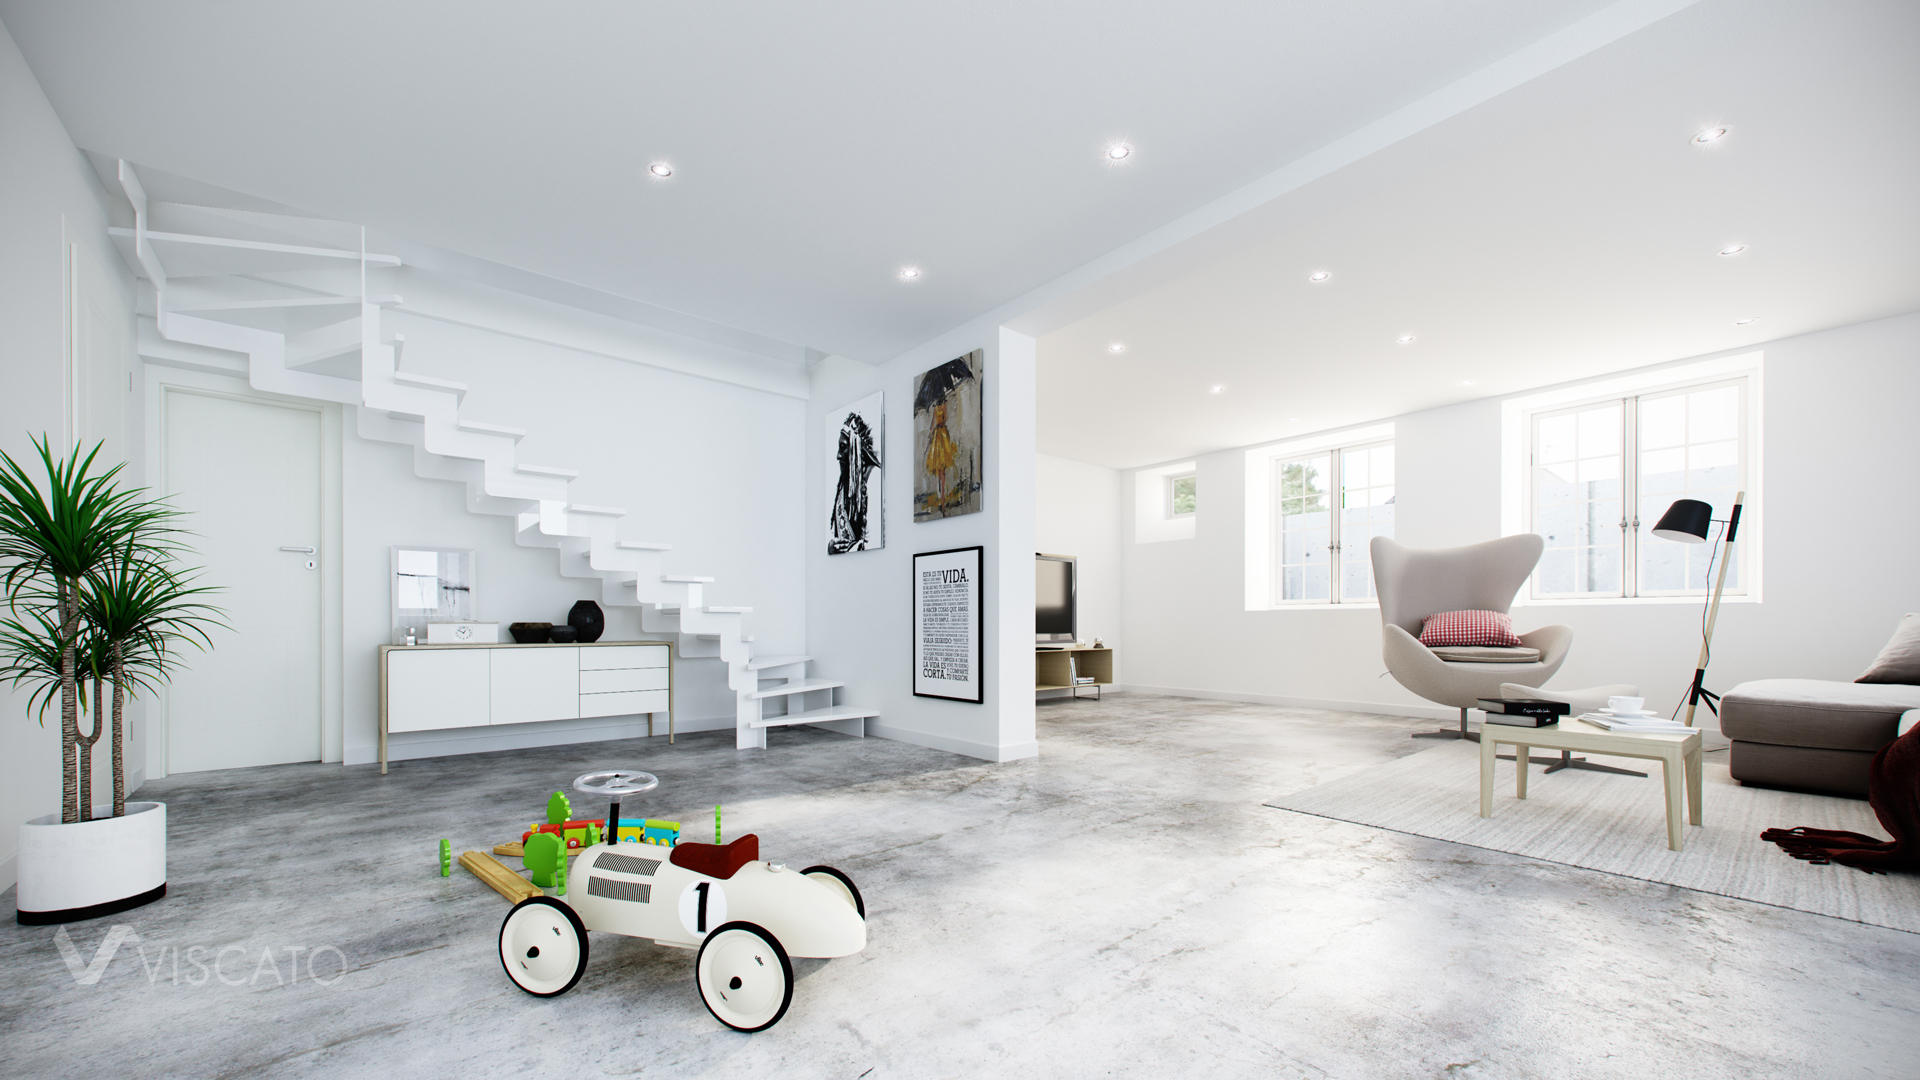 Scandinavian style interior visualization with toy car Viscato